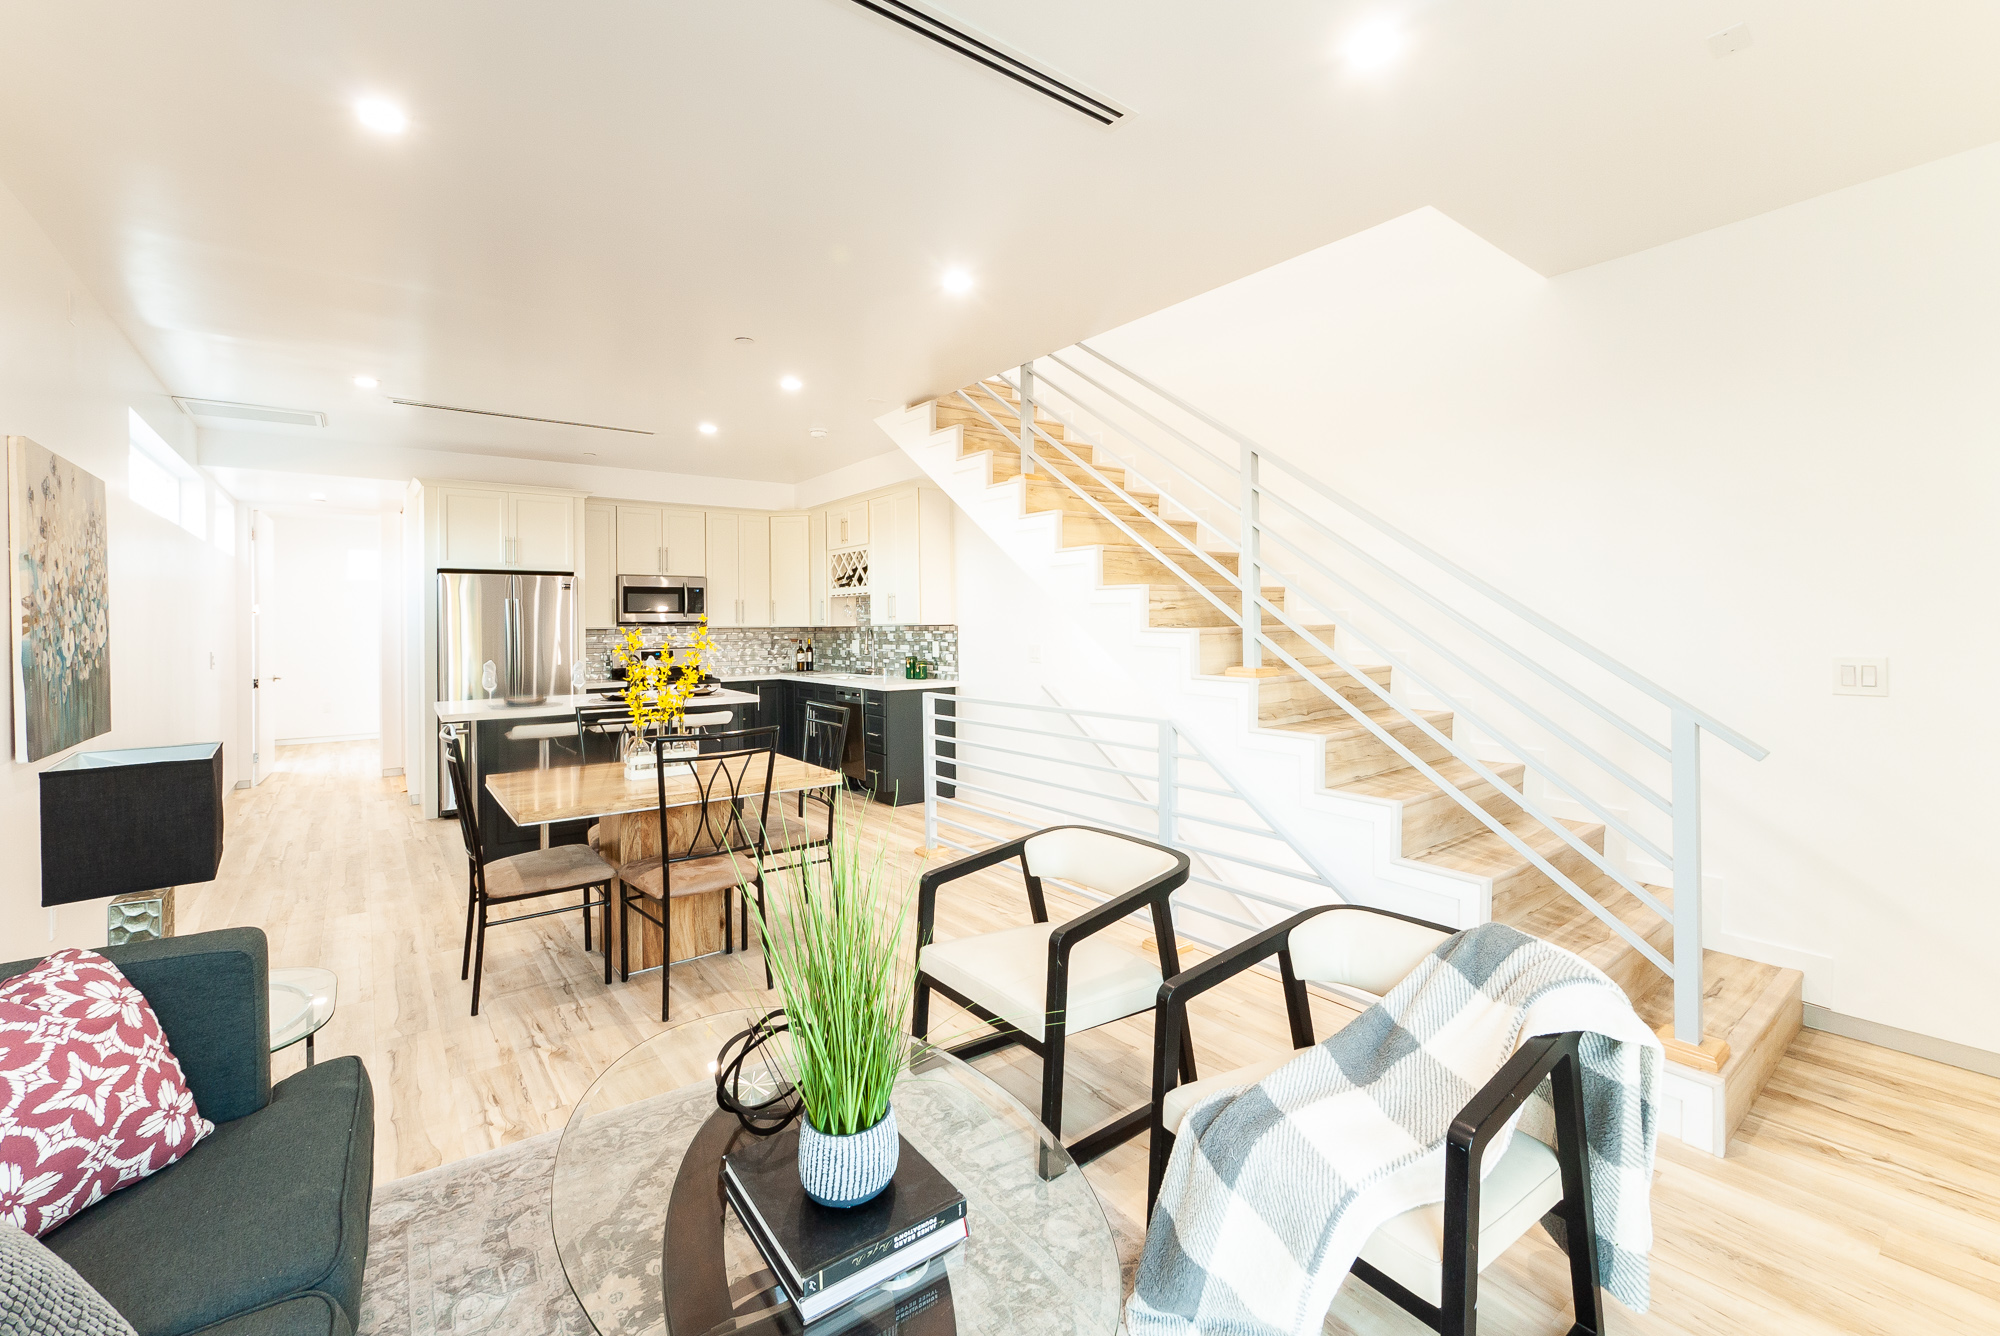 Gorgeous 3 Bedroom/ 3 Bath in Brand-New Duplex Townhouse Available in East Hollywood!